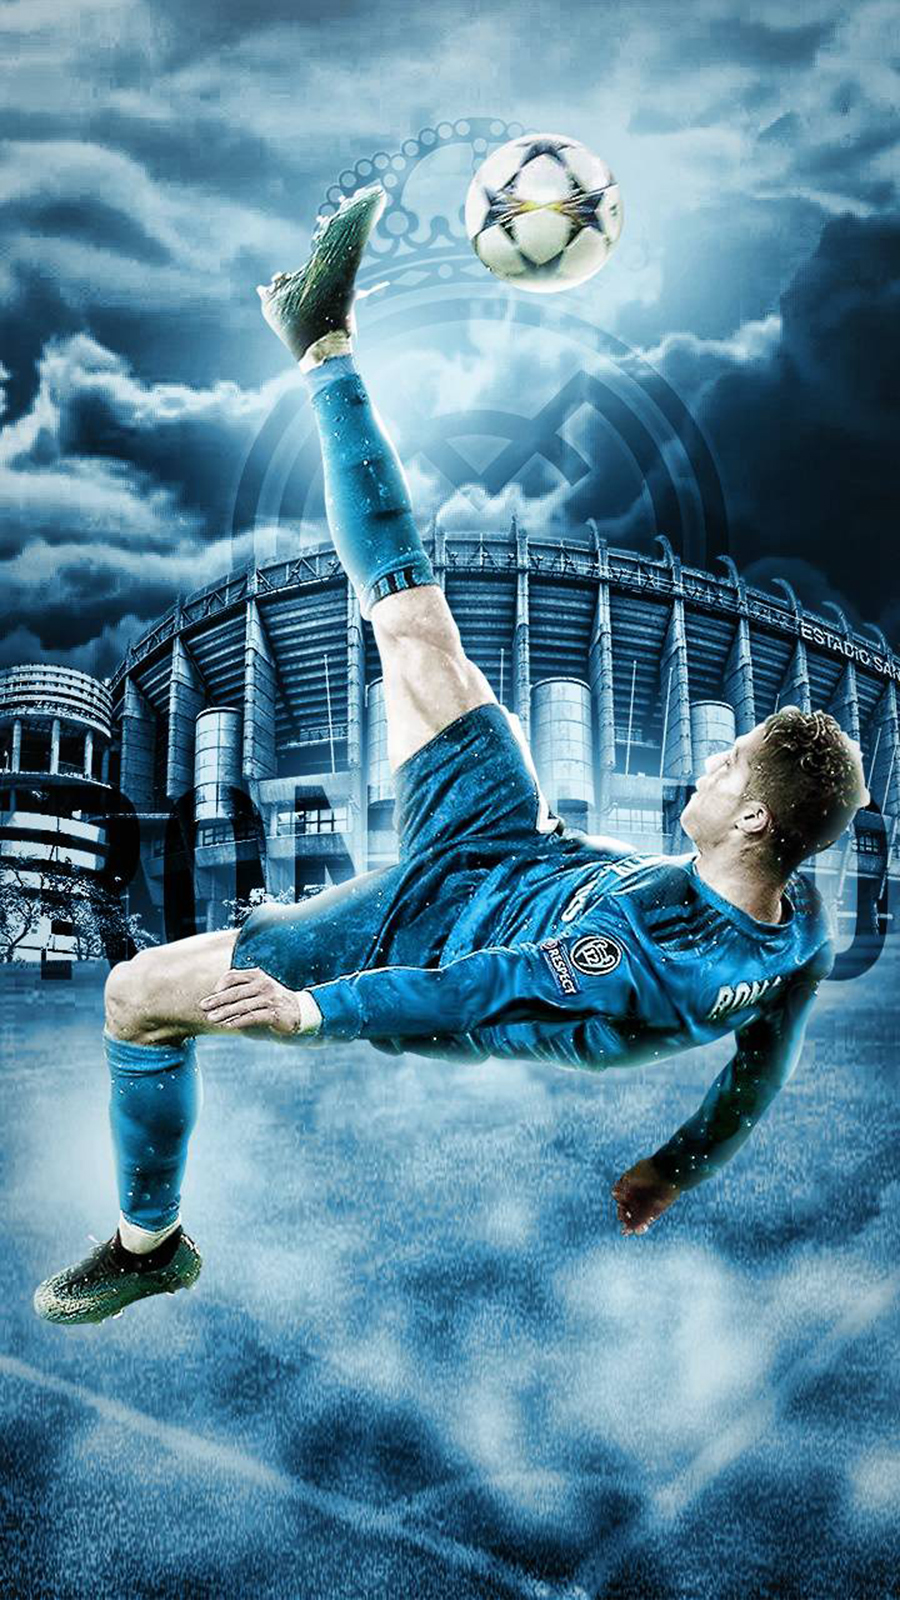 Ronaldo Football Wallpapers Free Download For Your Device